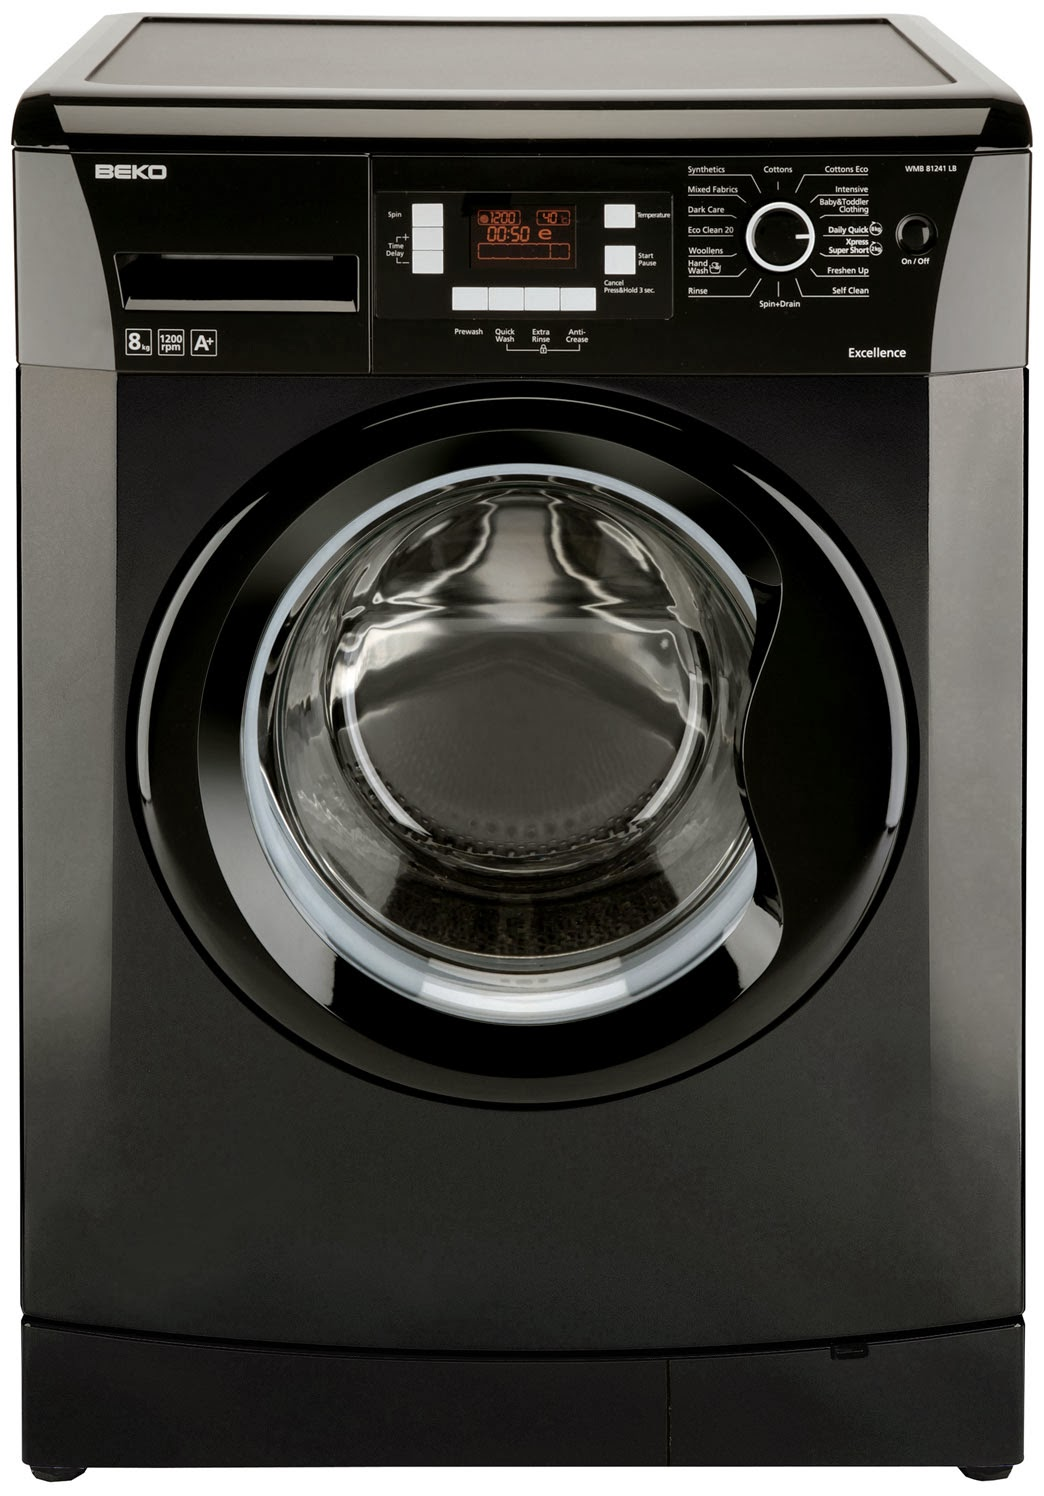 Beko WMB81241LB | Washing Machine Reviews